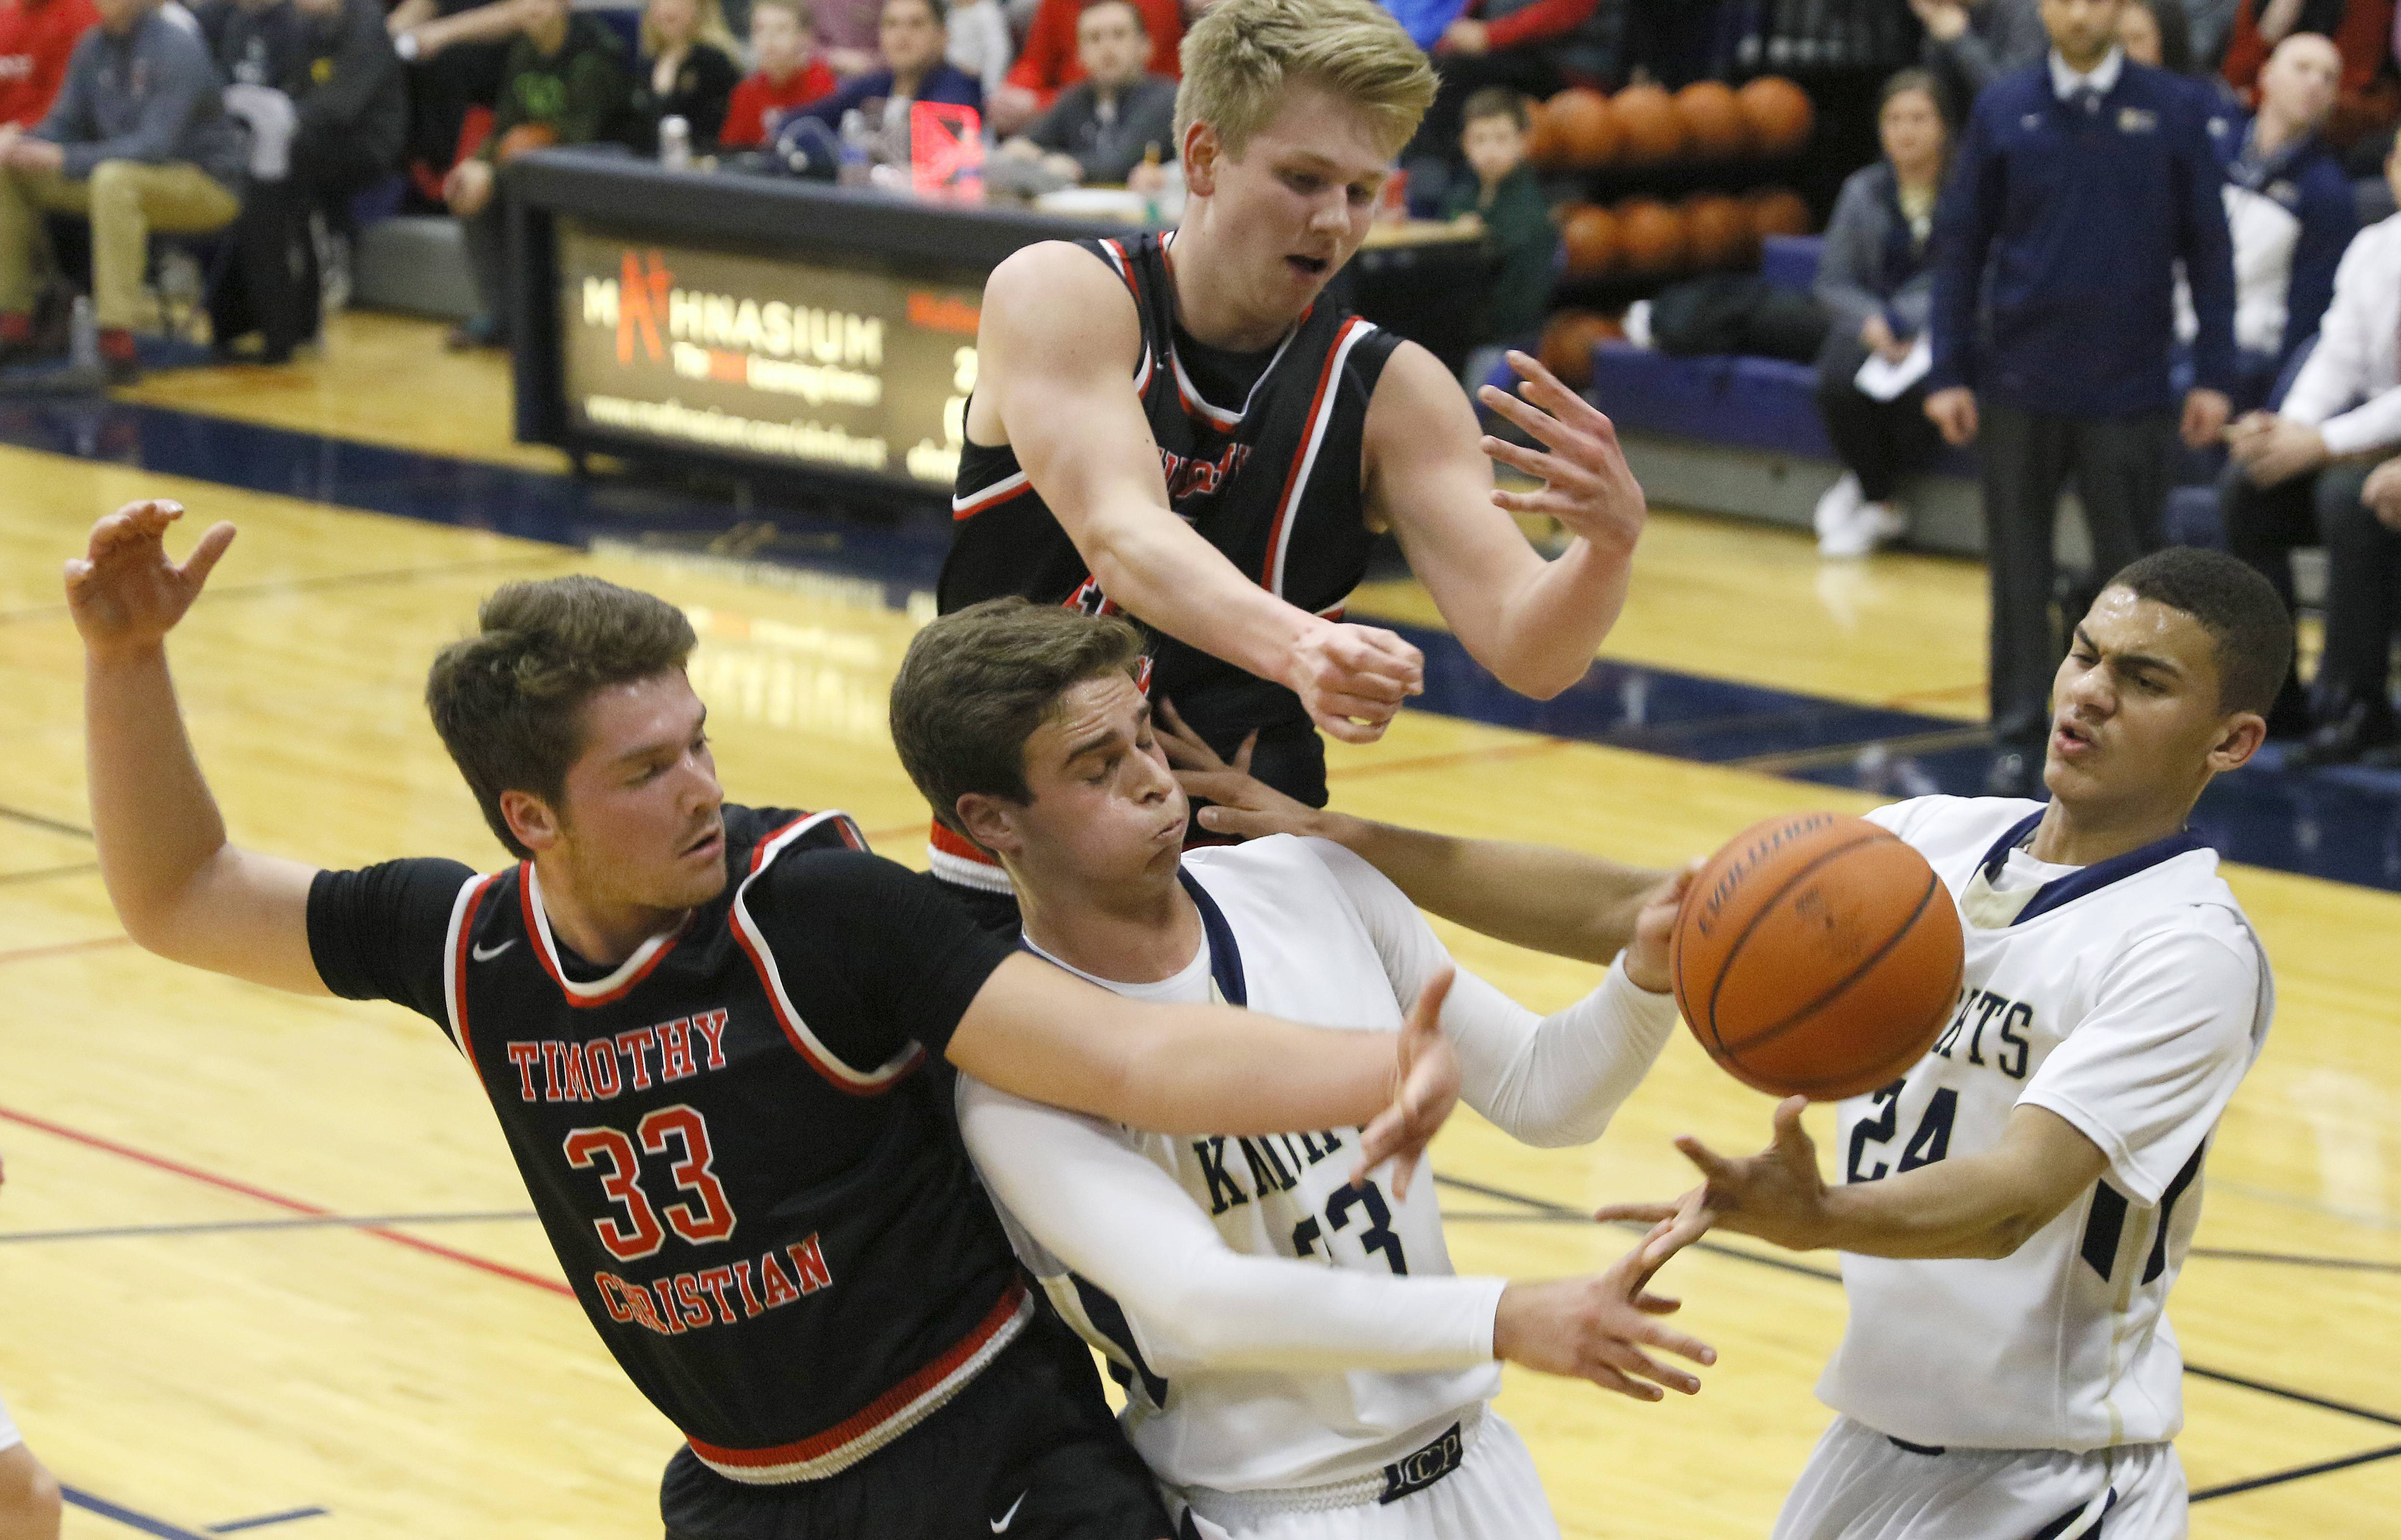 Timothy Christian players Brandon Orange and Joey Davidson (33) battle for a loose ball with IC Catholic Prep's Tony Gaudio and Amari Reed (24) during the Class 2A boys basketball regional final in Elmhurst.